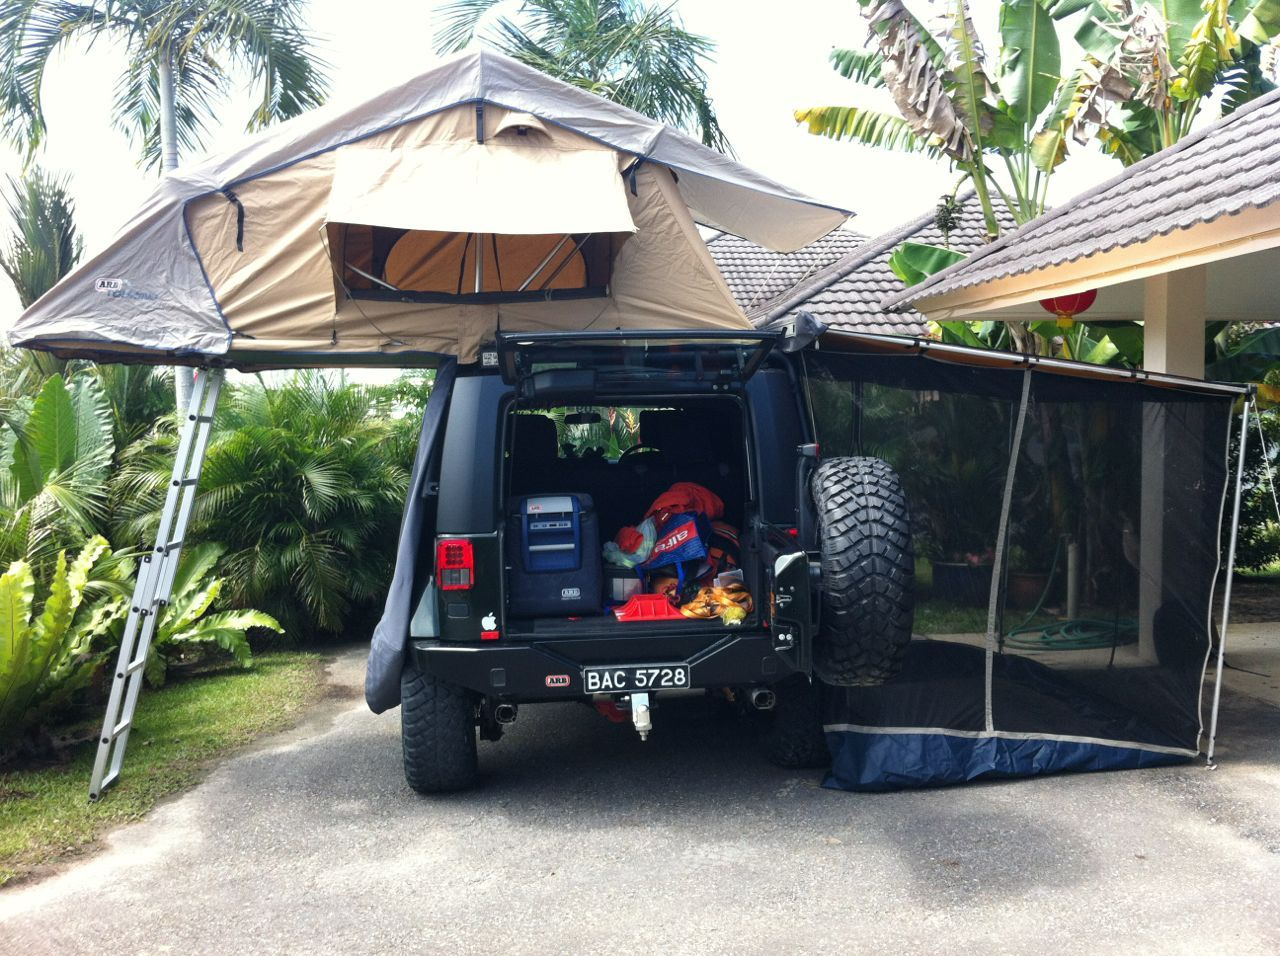 Jeep ARB roof tent and a Gobi roof rack & Jeep ARB roof tent and a Gobi roof rack | Jeeps | Pinterest | Roof ...